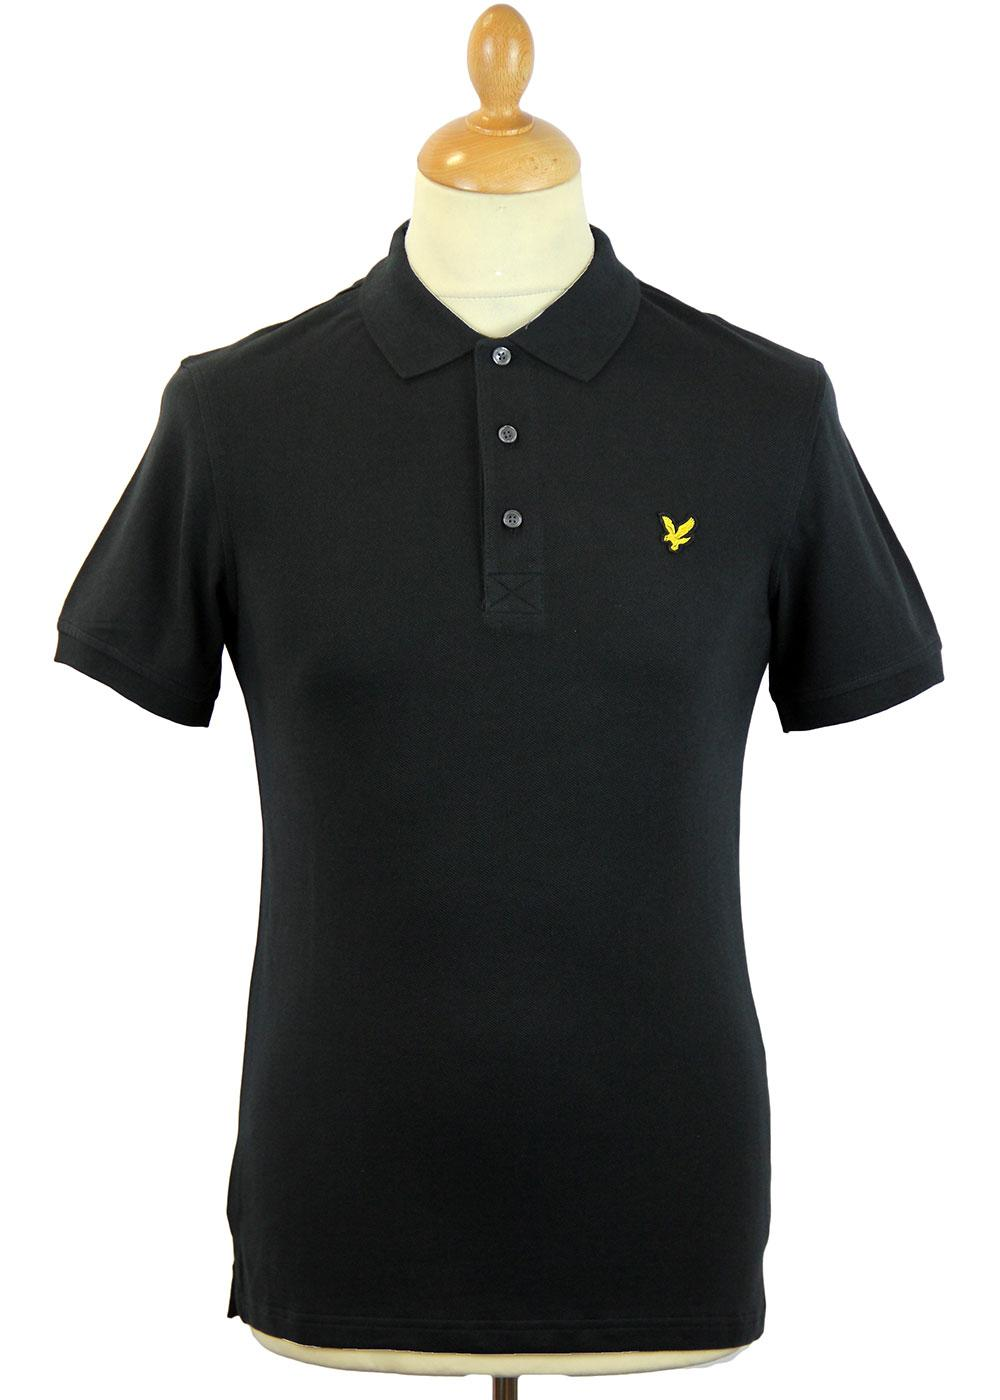 LYLE & SCOTT Retro Mod Plain Golden Eagle Polo (B)